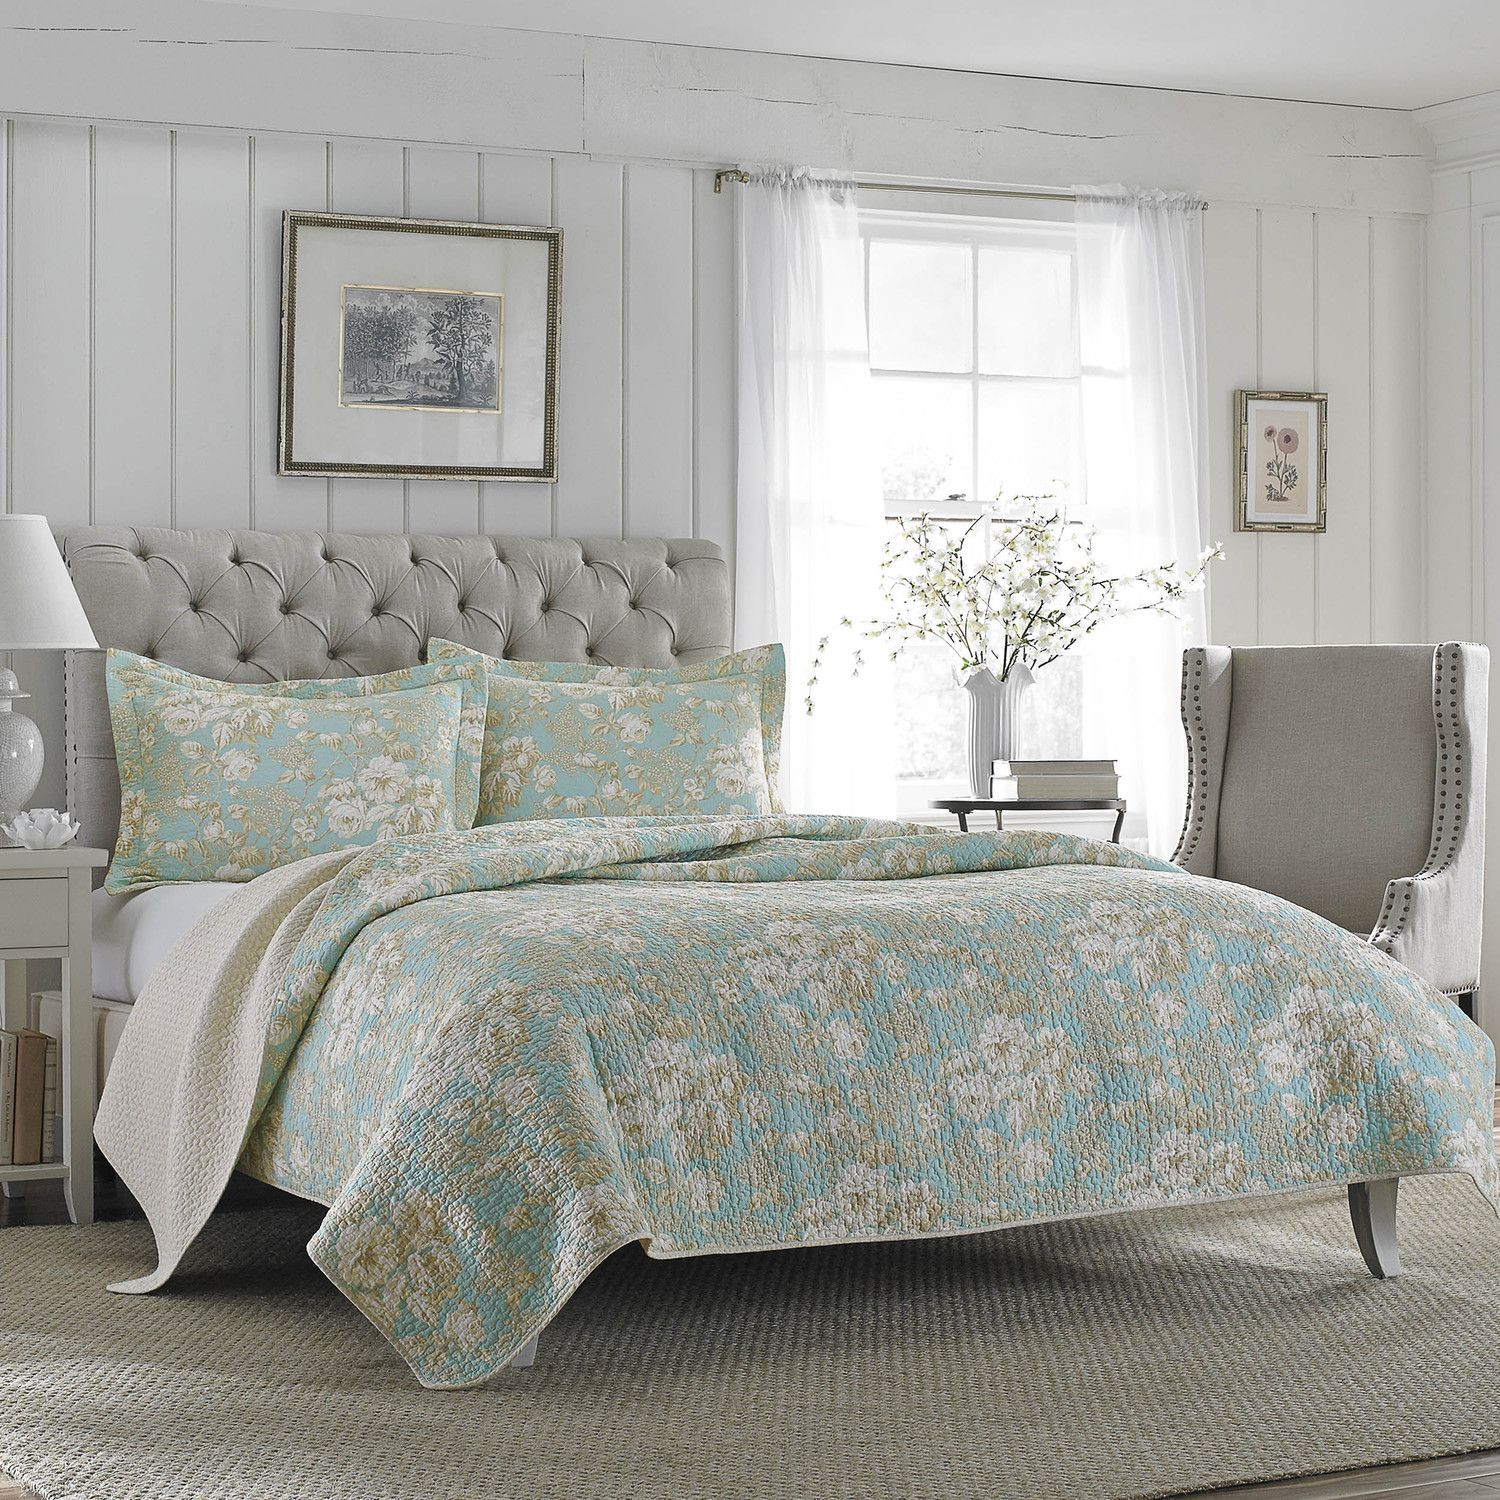 Laura Ashley Home Brompton Quilt Set In Blue Reviews Wayfair